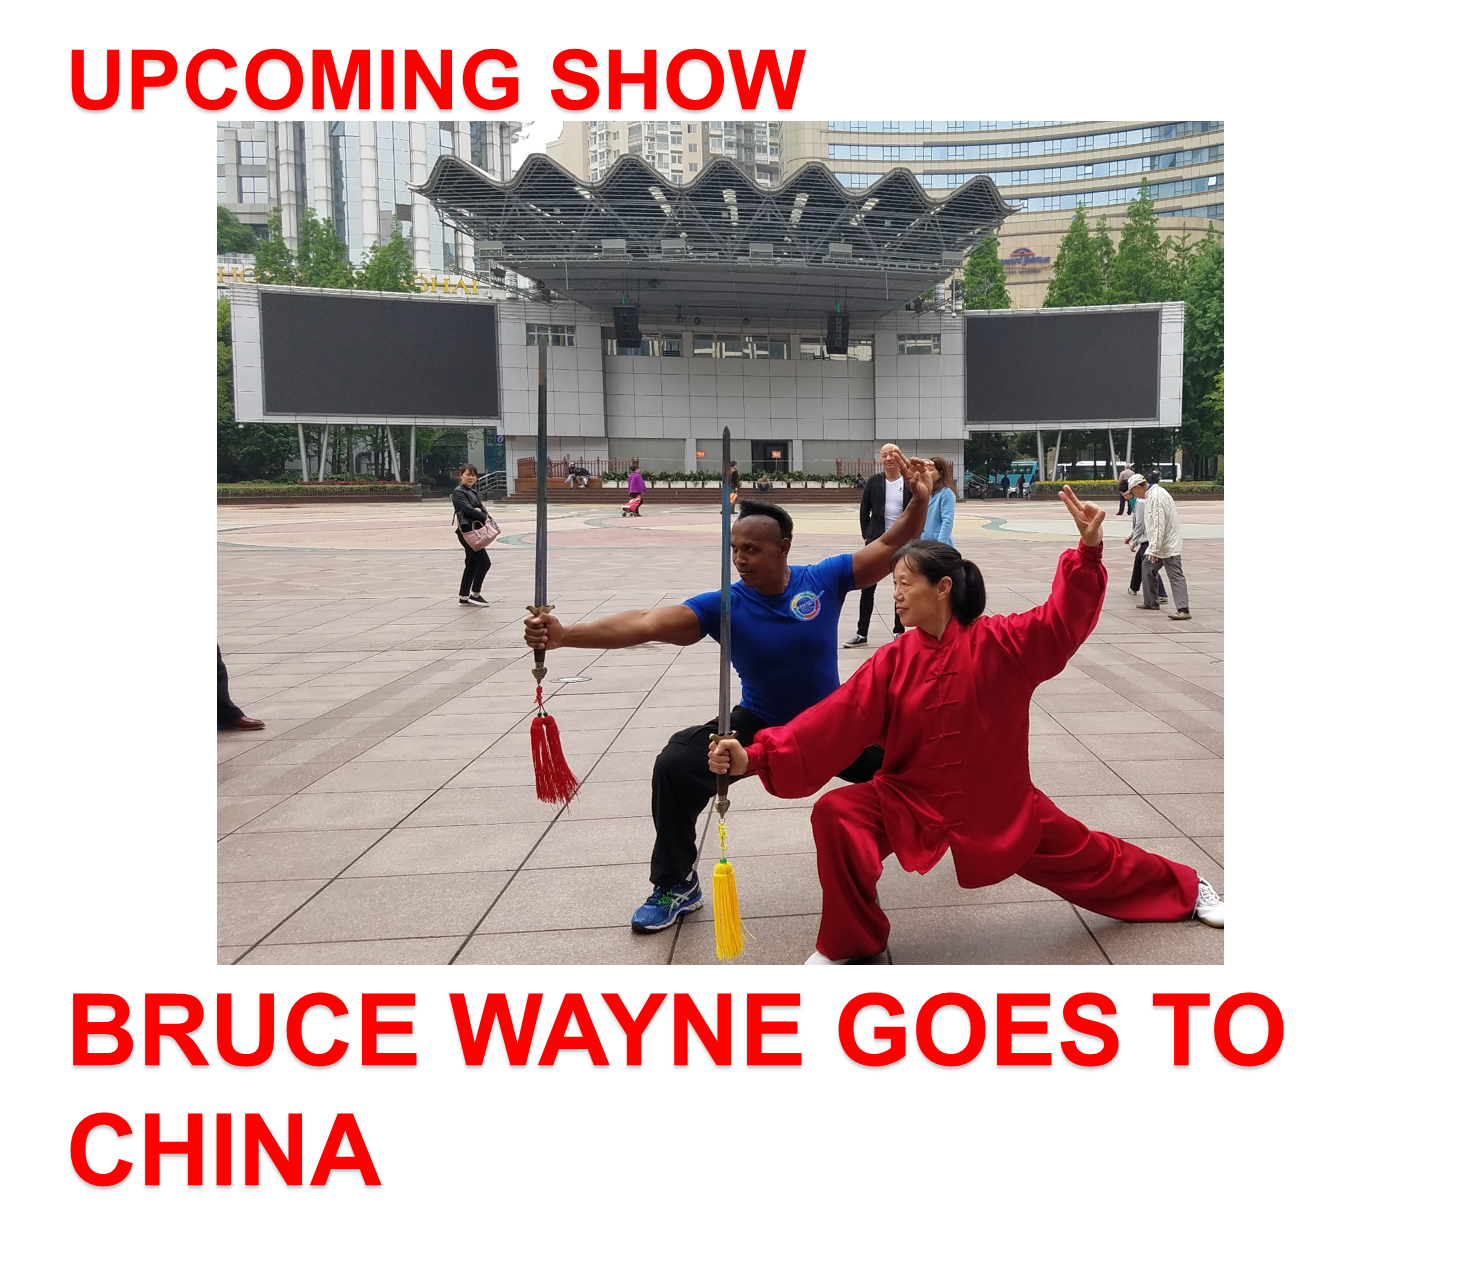 BRUCE WAYNE GOES TO CHINA - ARMAGEDDON WEIGHT LOSS DVD PROGRAM - DOCSCIENCE - RADIO SHOW - BEST WEIGHT LOSS DVD FOR WOMEN